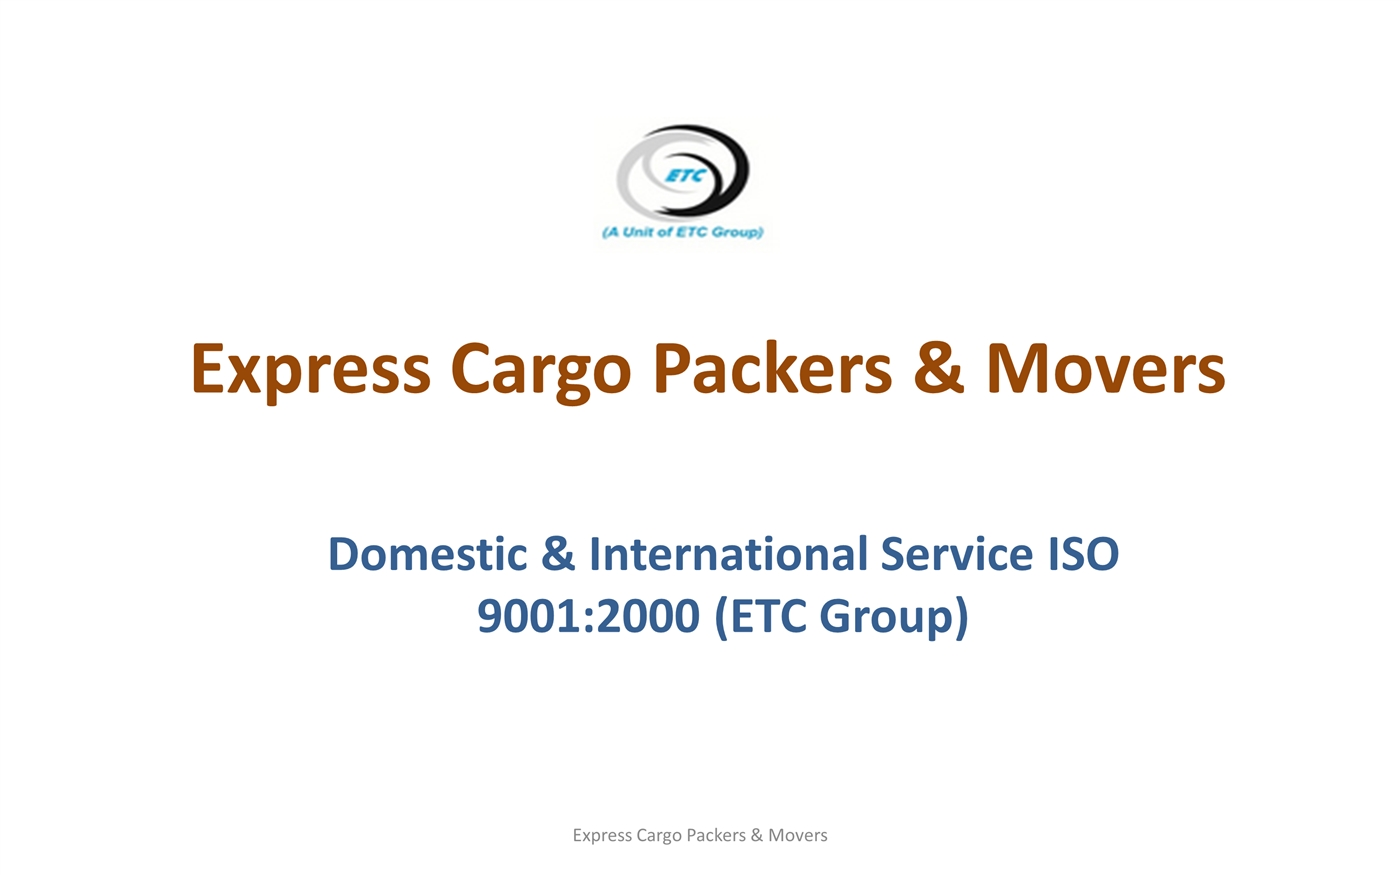 Express Cargo Packers and Movers Image